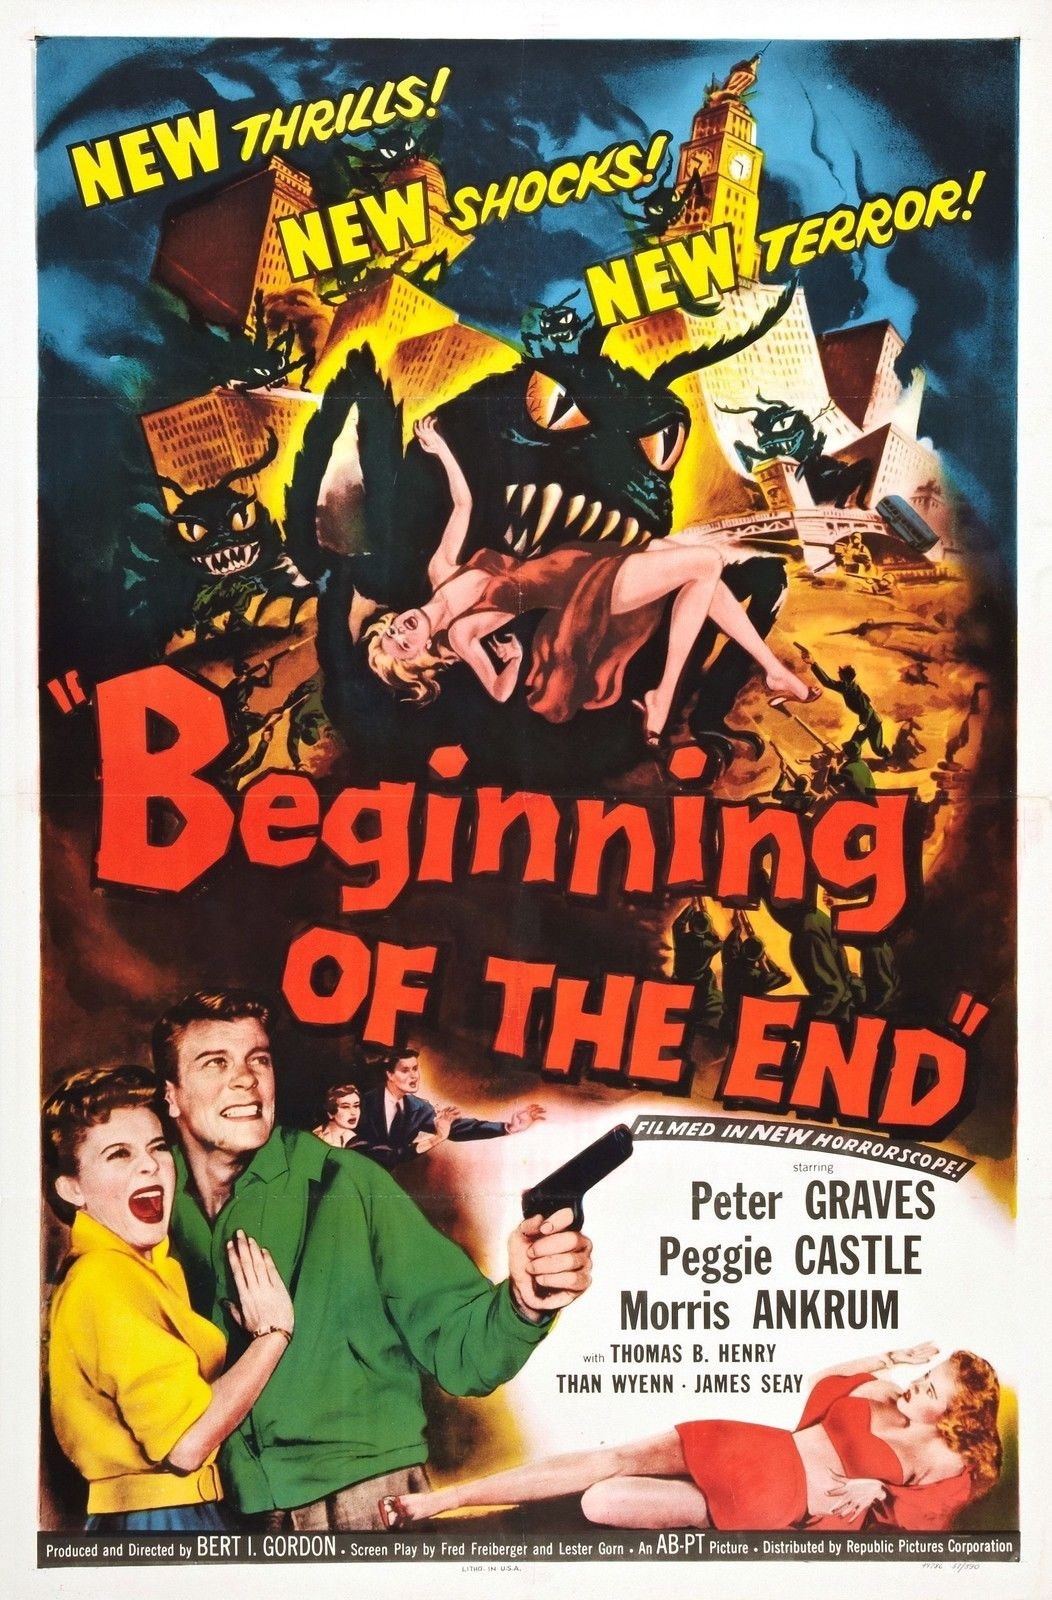 72784-BEGINNING-OF-THE-END-Movie-1957-Horror-Sci-Fi-Wall-Print-Poster-Affiche